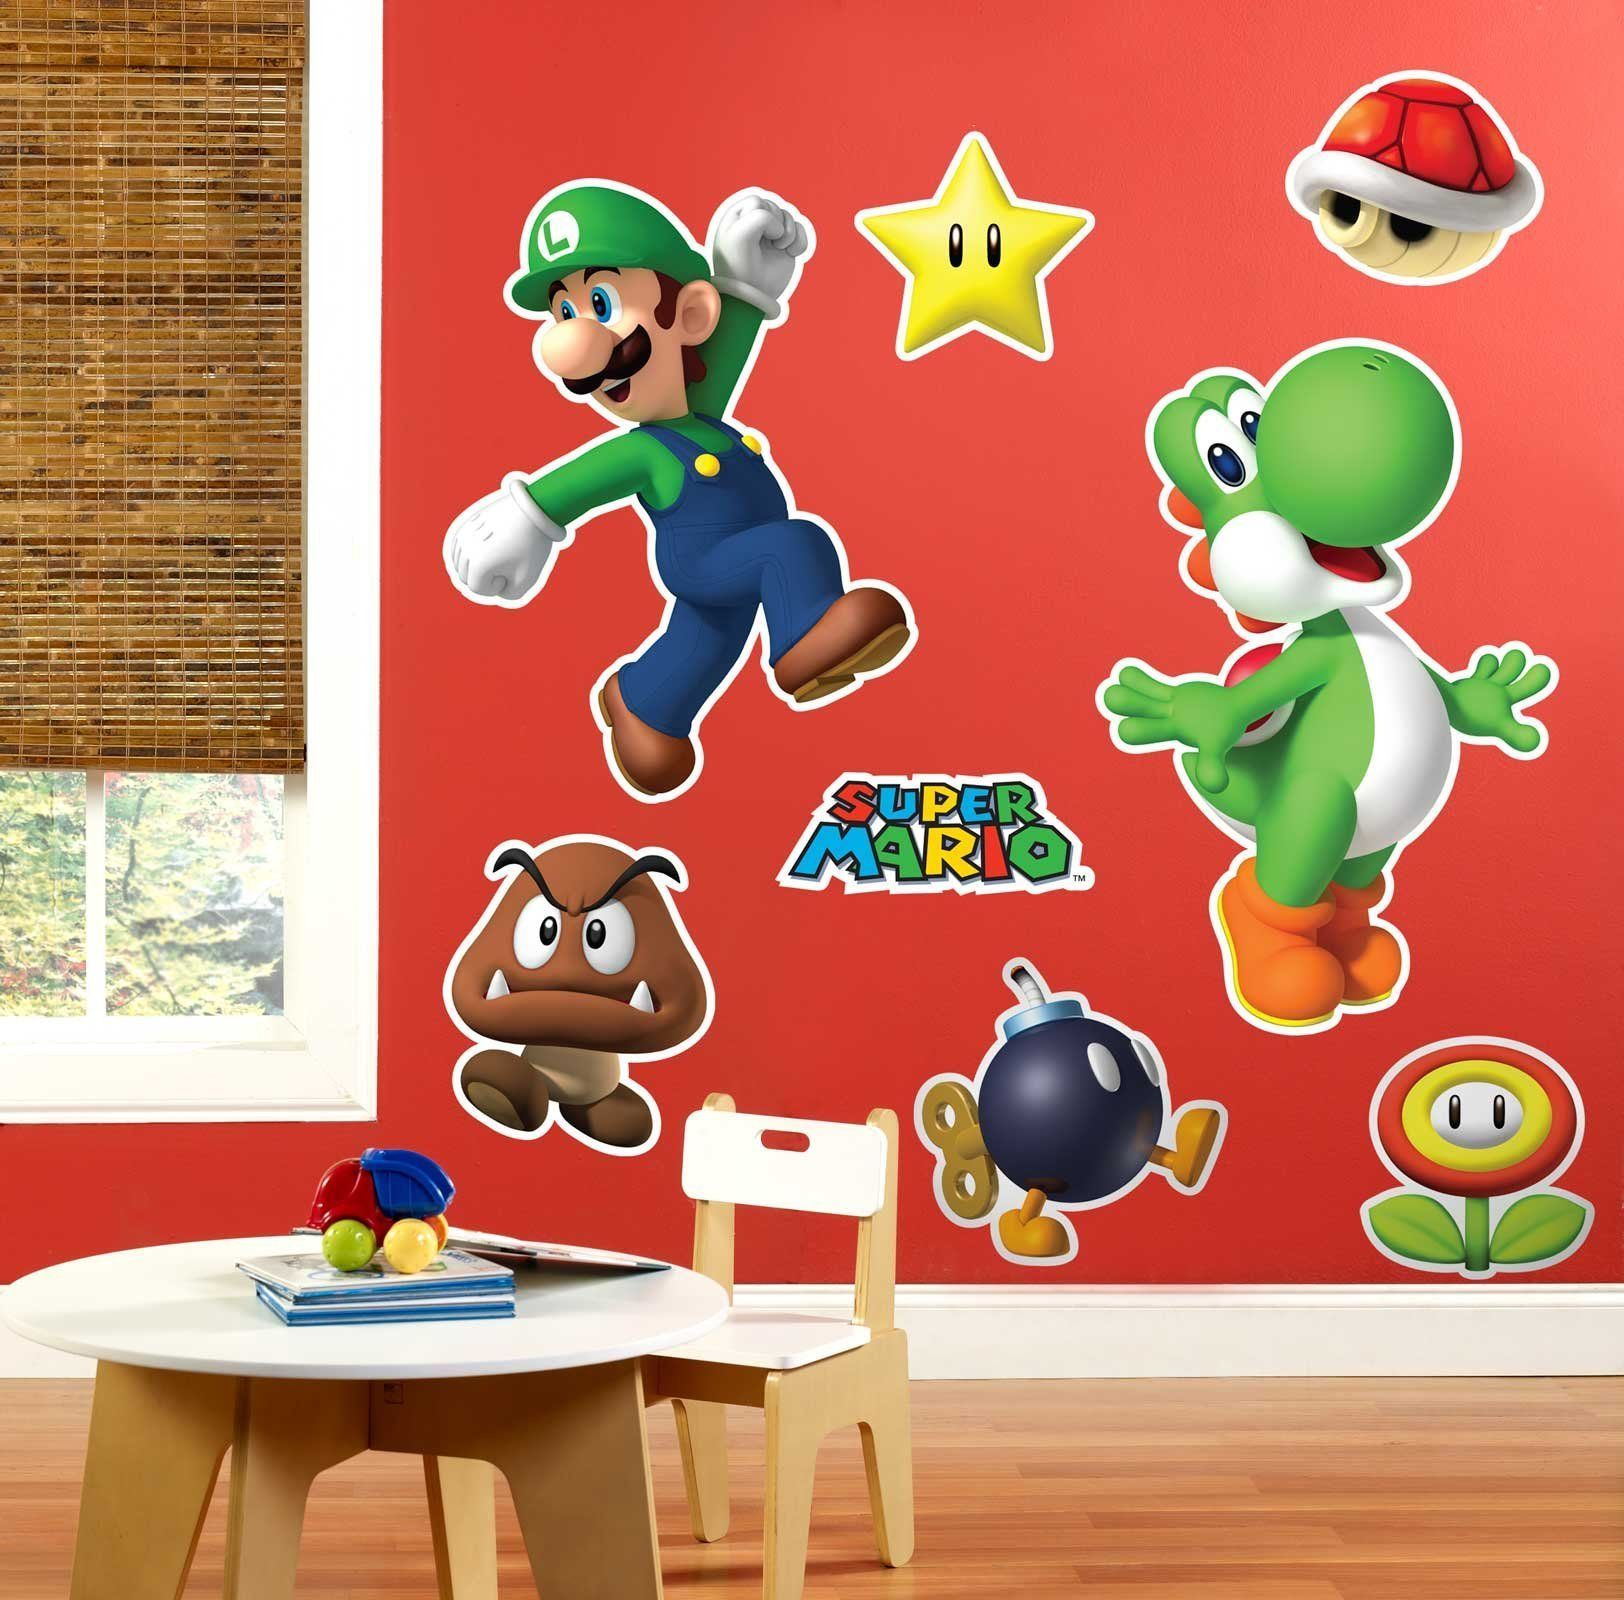 Super Mario Party Giant Wall Decals Super mario party Wall decals